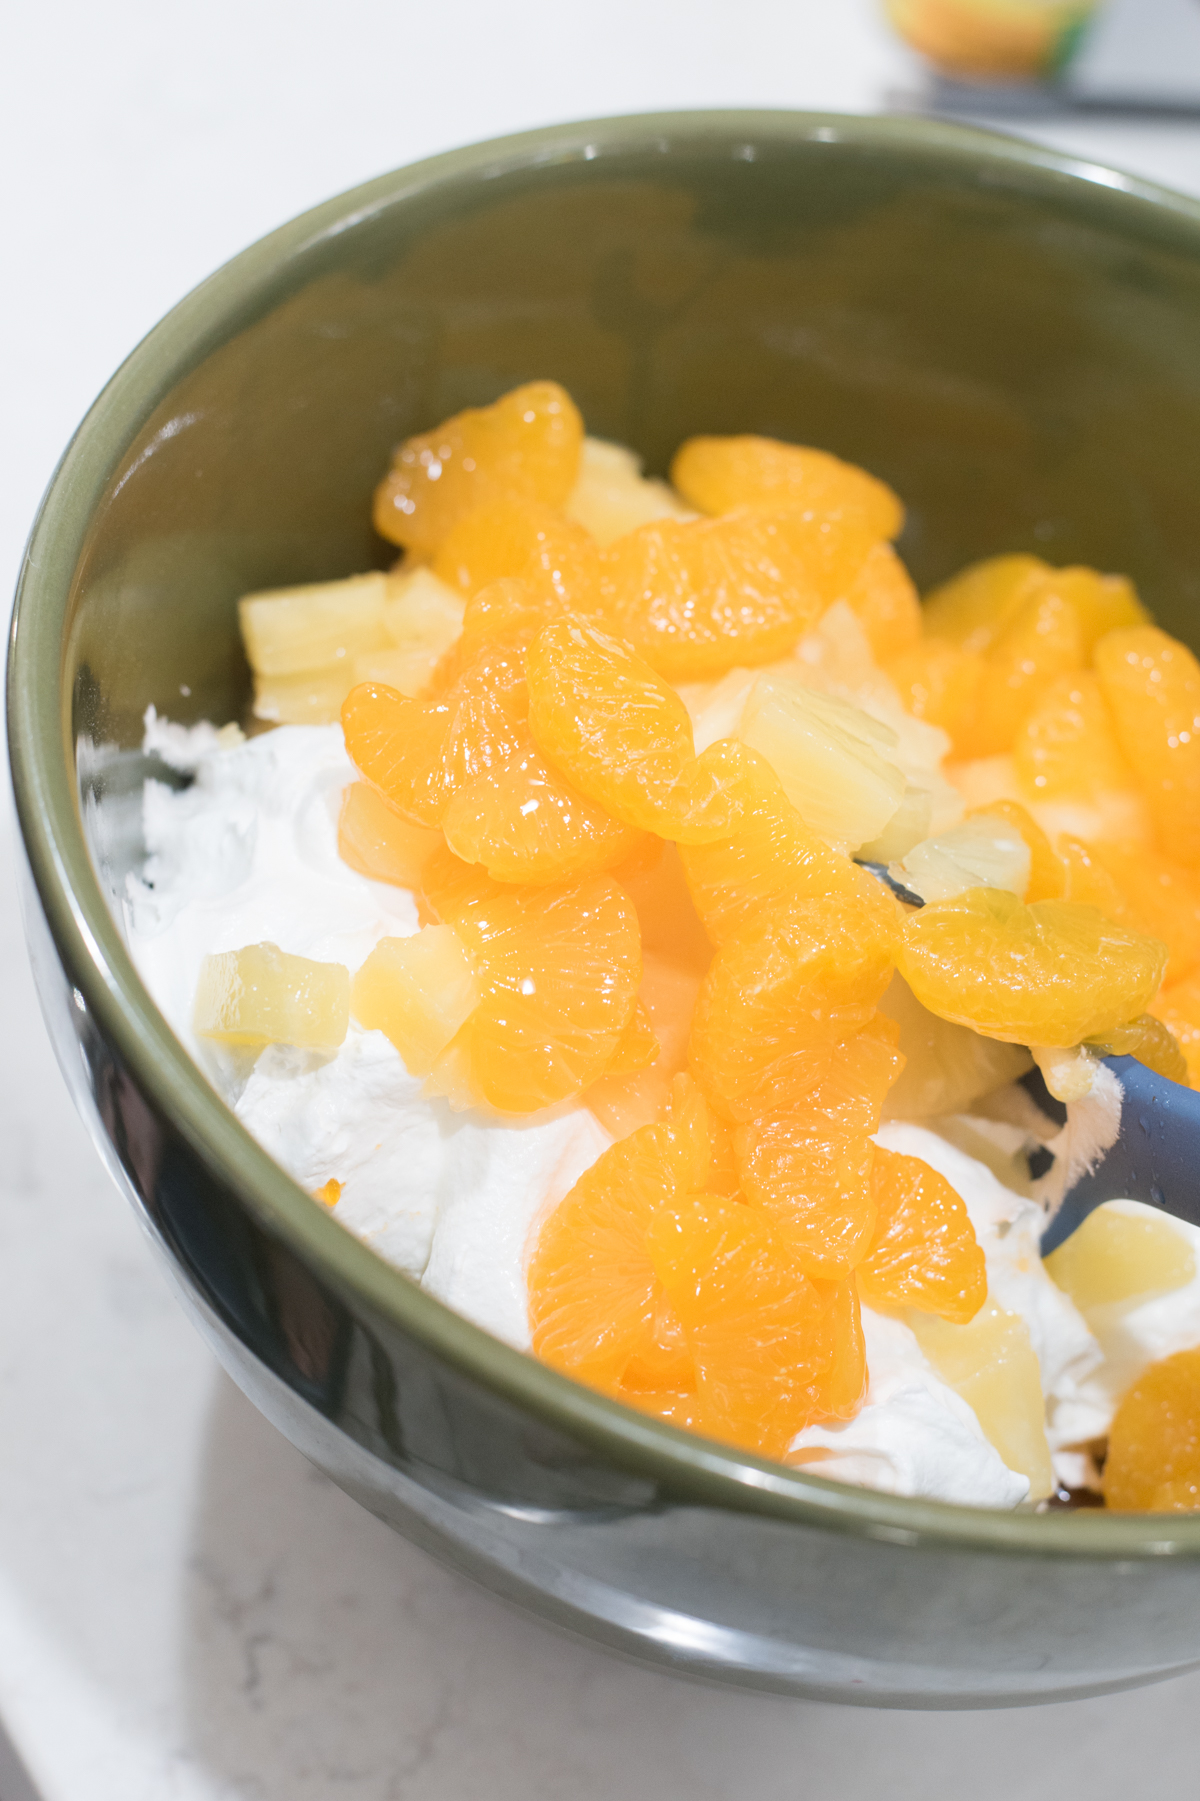 orange jello with mandarin oranges and pineapple